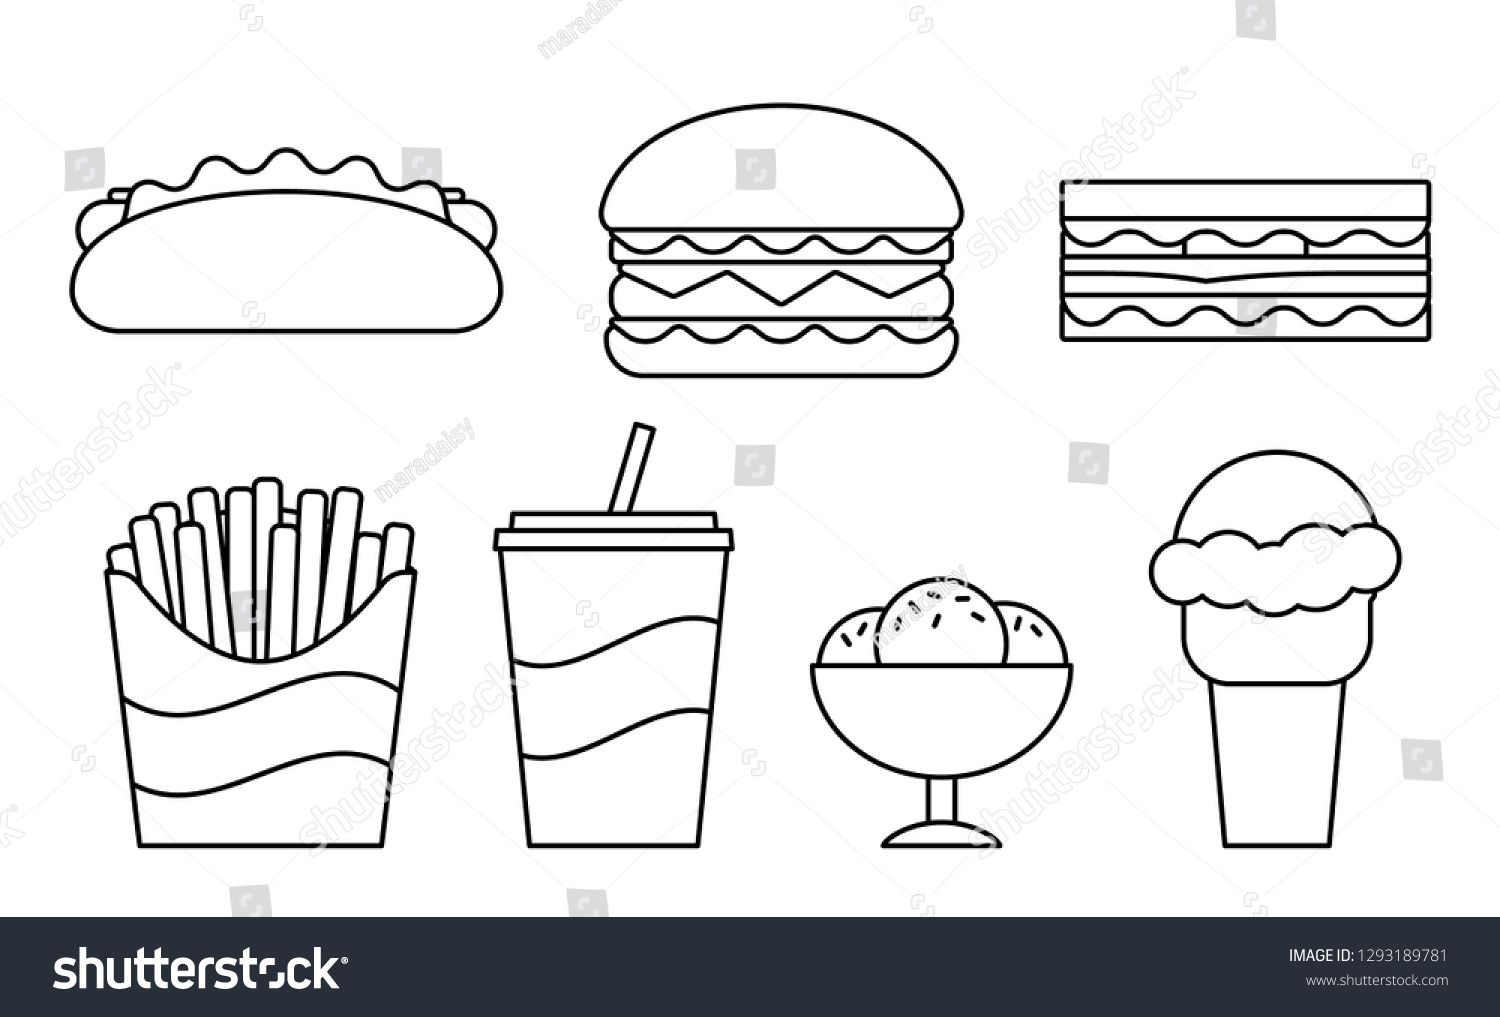 Pin By Taibe Hoxha On Math Fast Food Line Icon Clipart Black And White